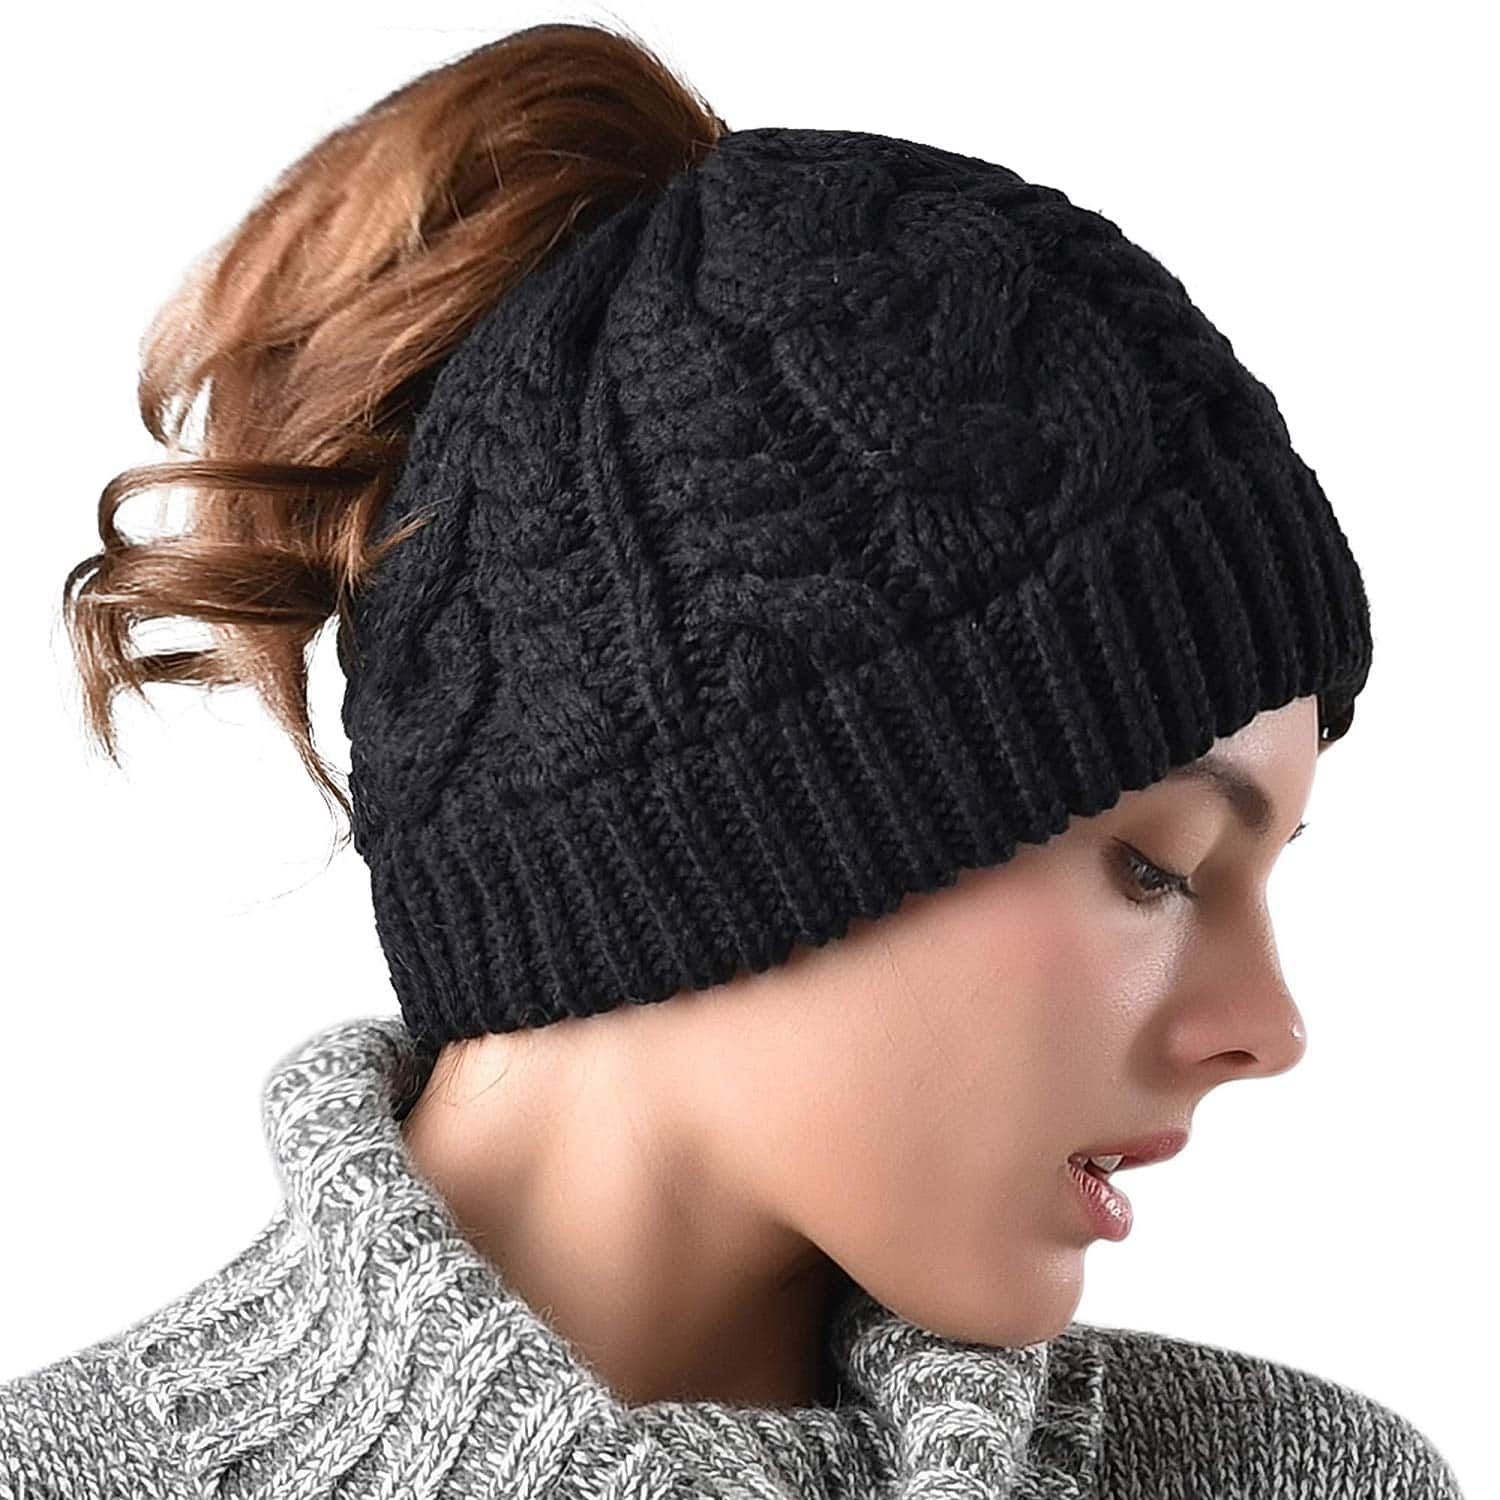 799fc74e2b3 40% off - Knit Ponytail Beanie Hat For Women Girls Winter Outdoor Sports  (Black)  8.39